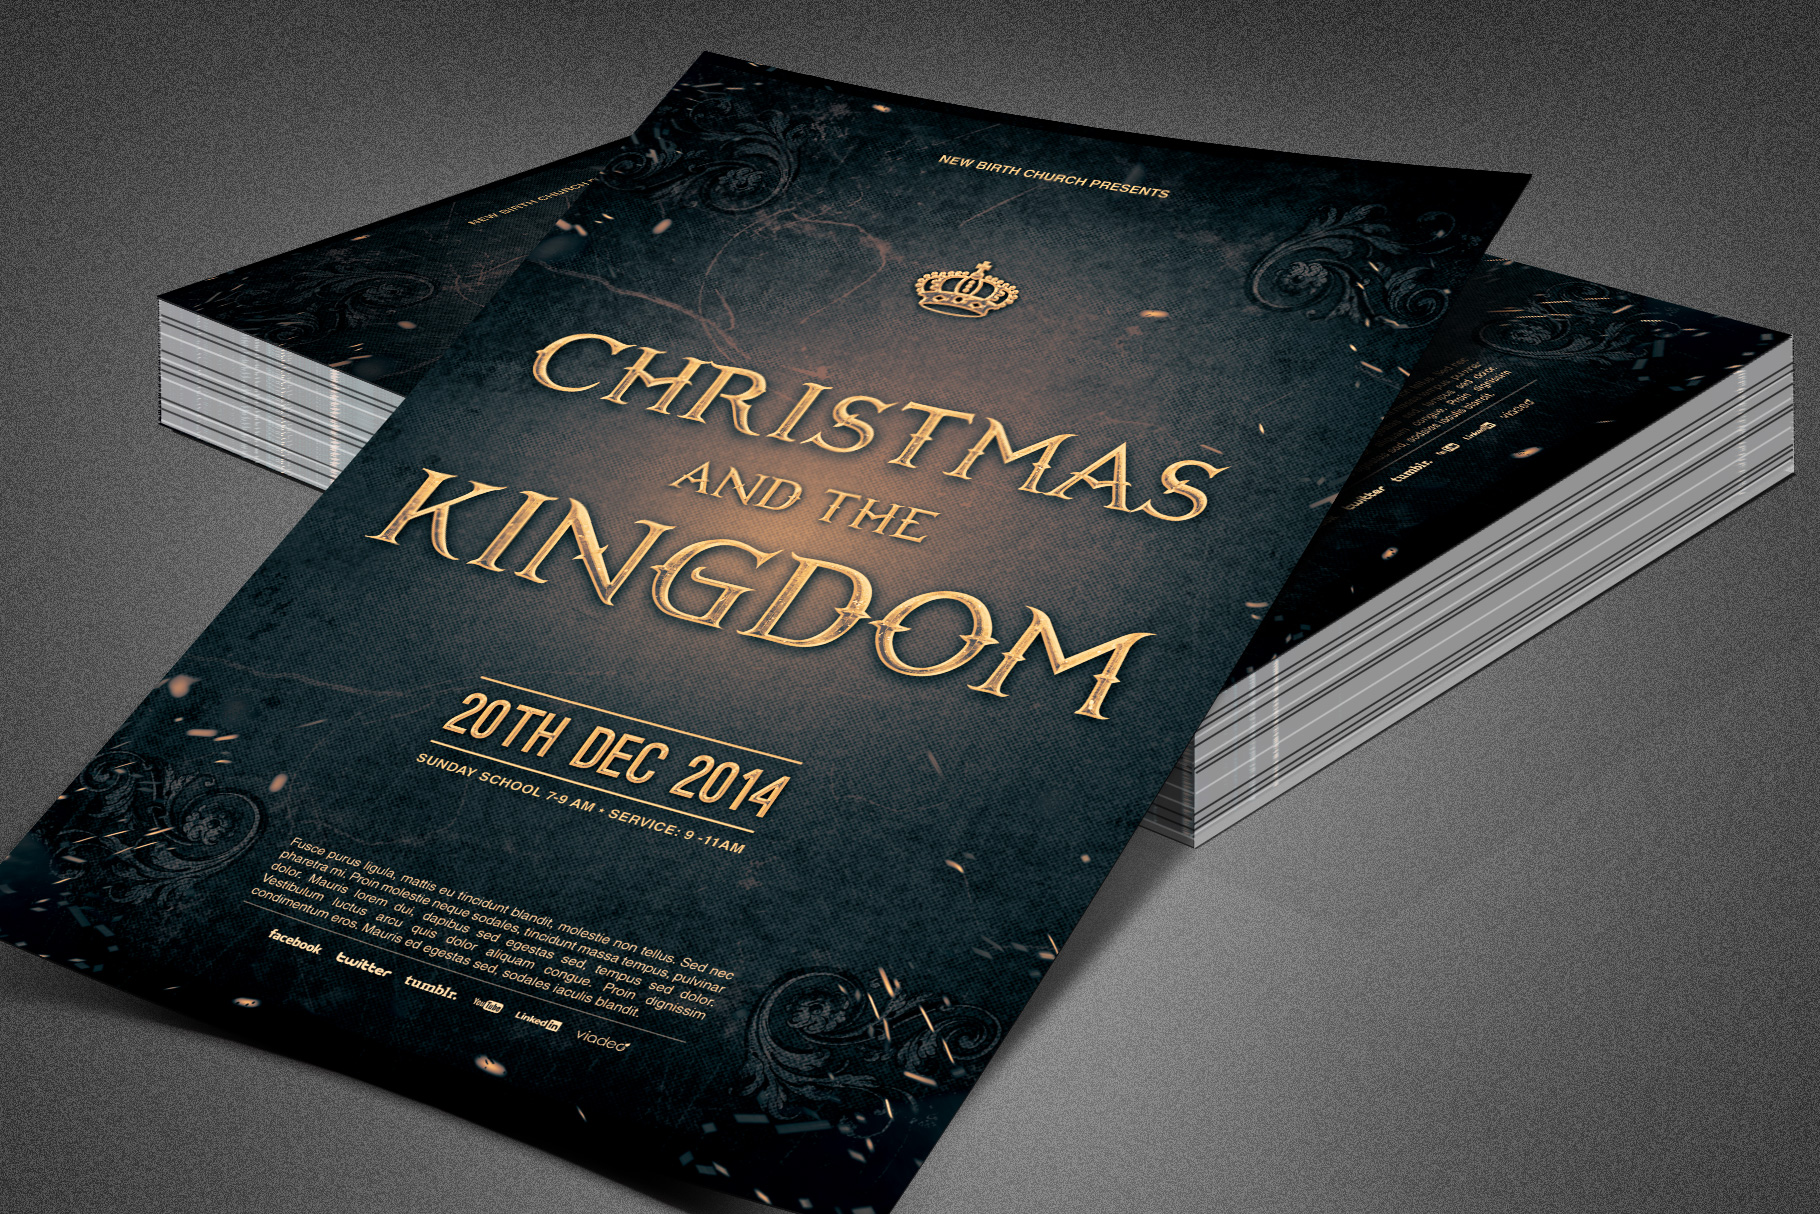 Christmas and the Kingdom Flyer example image 5